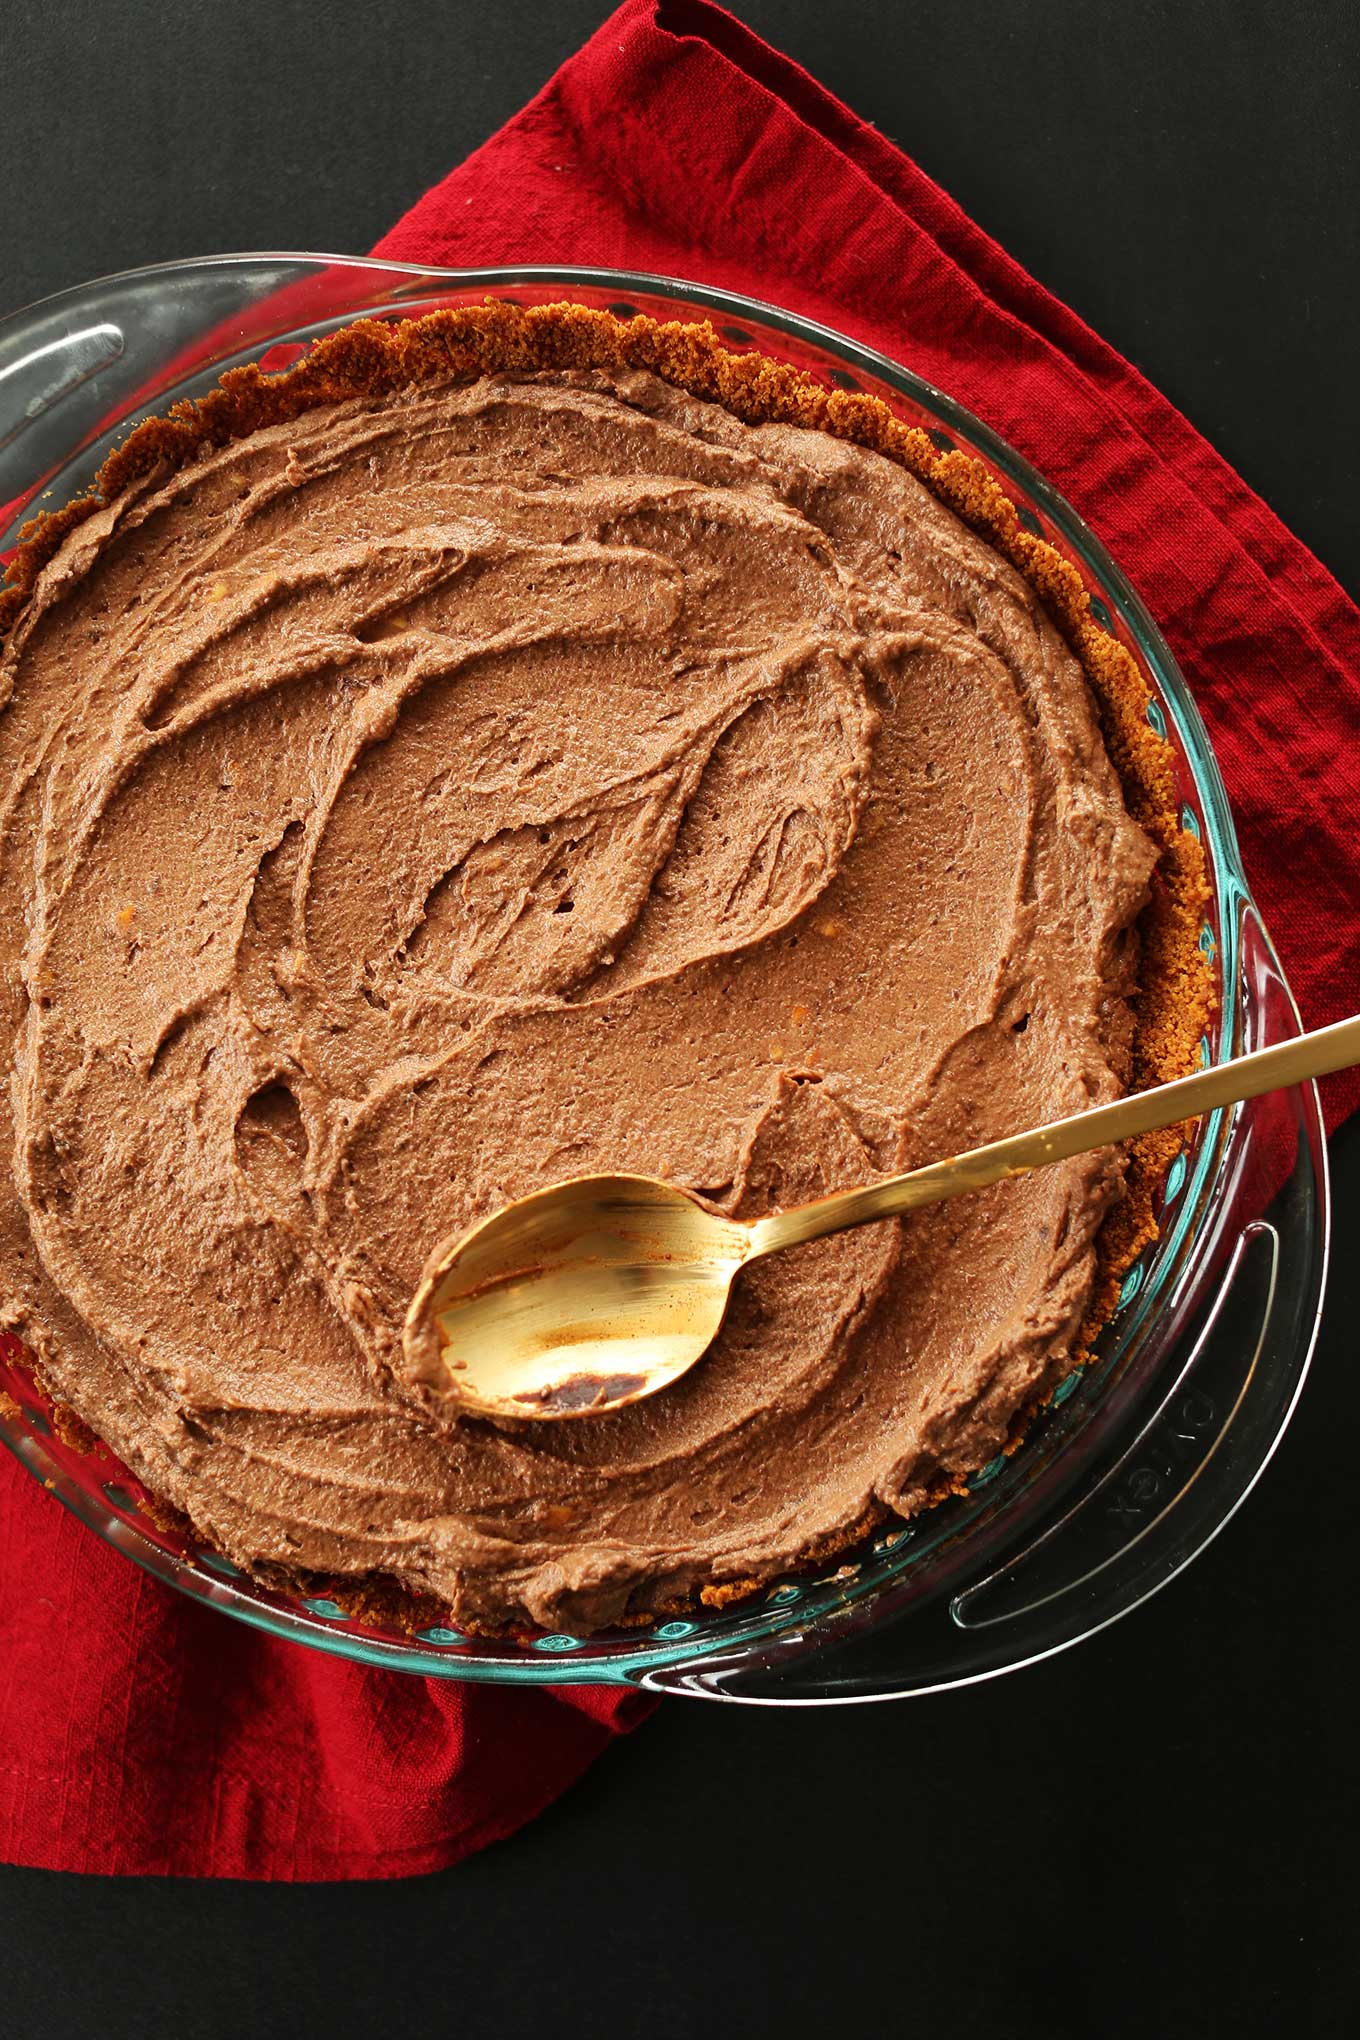 Spreading Vegan Chocolate Peanut Butter Mousse into a pie pan for a delicious vegan dessert